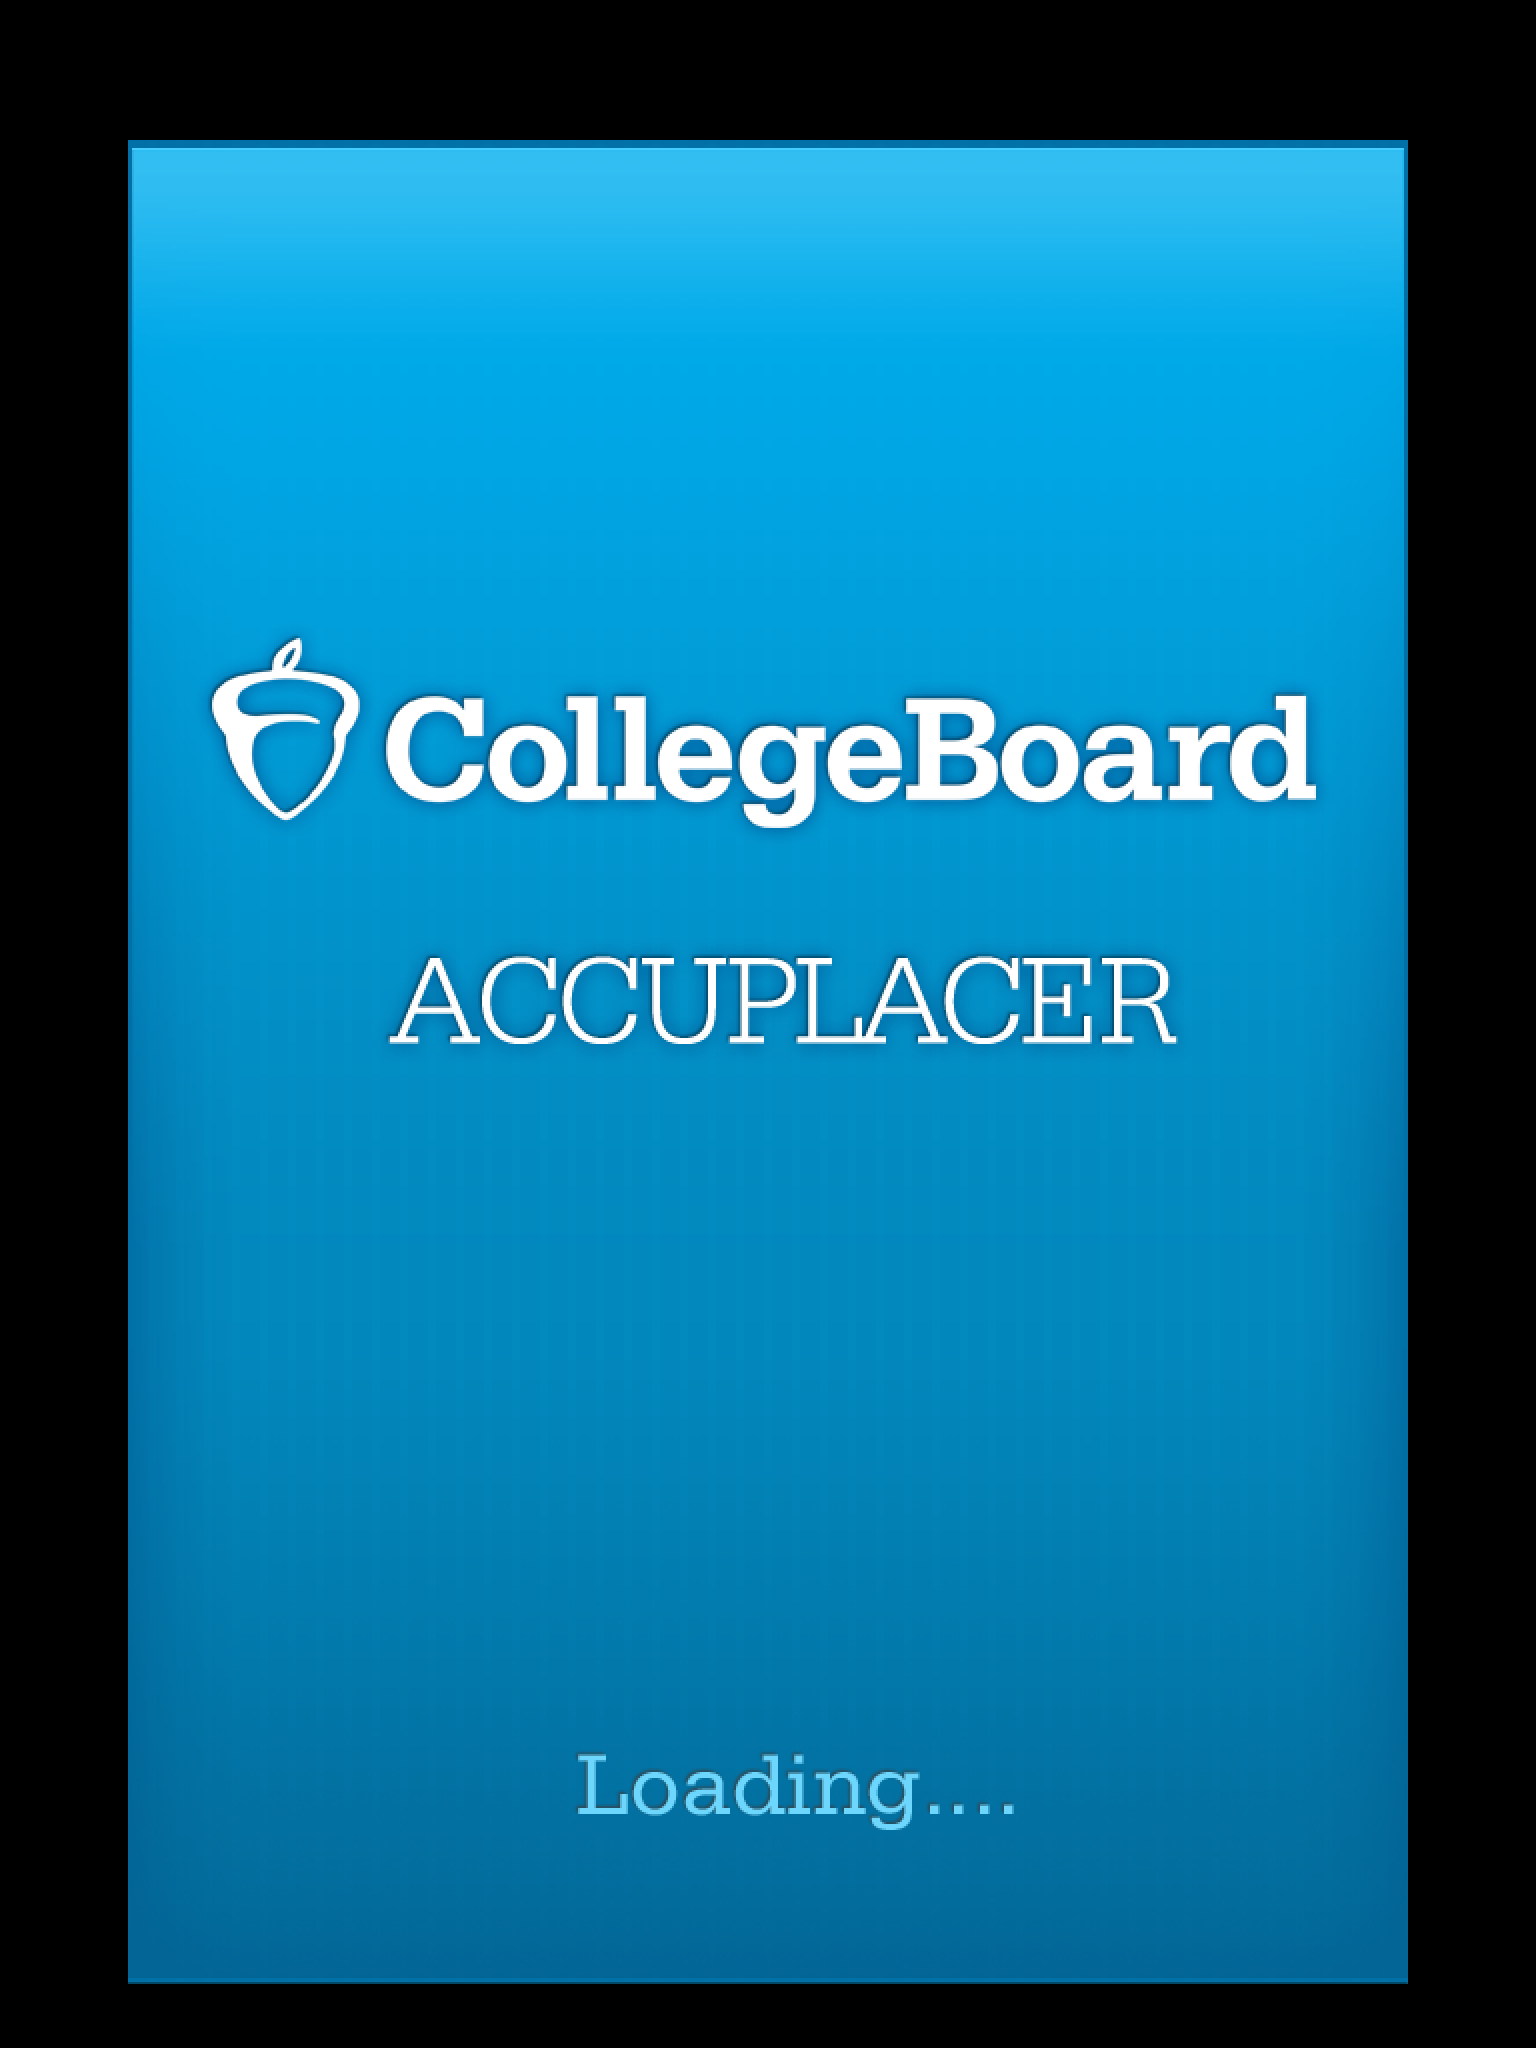 Helps kids and adults prep for five ACCUPLACER exams.